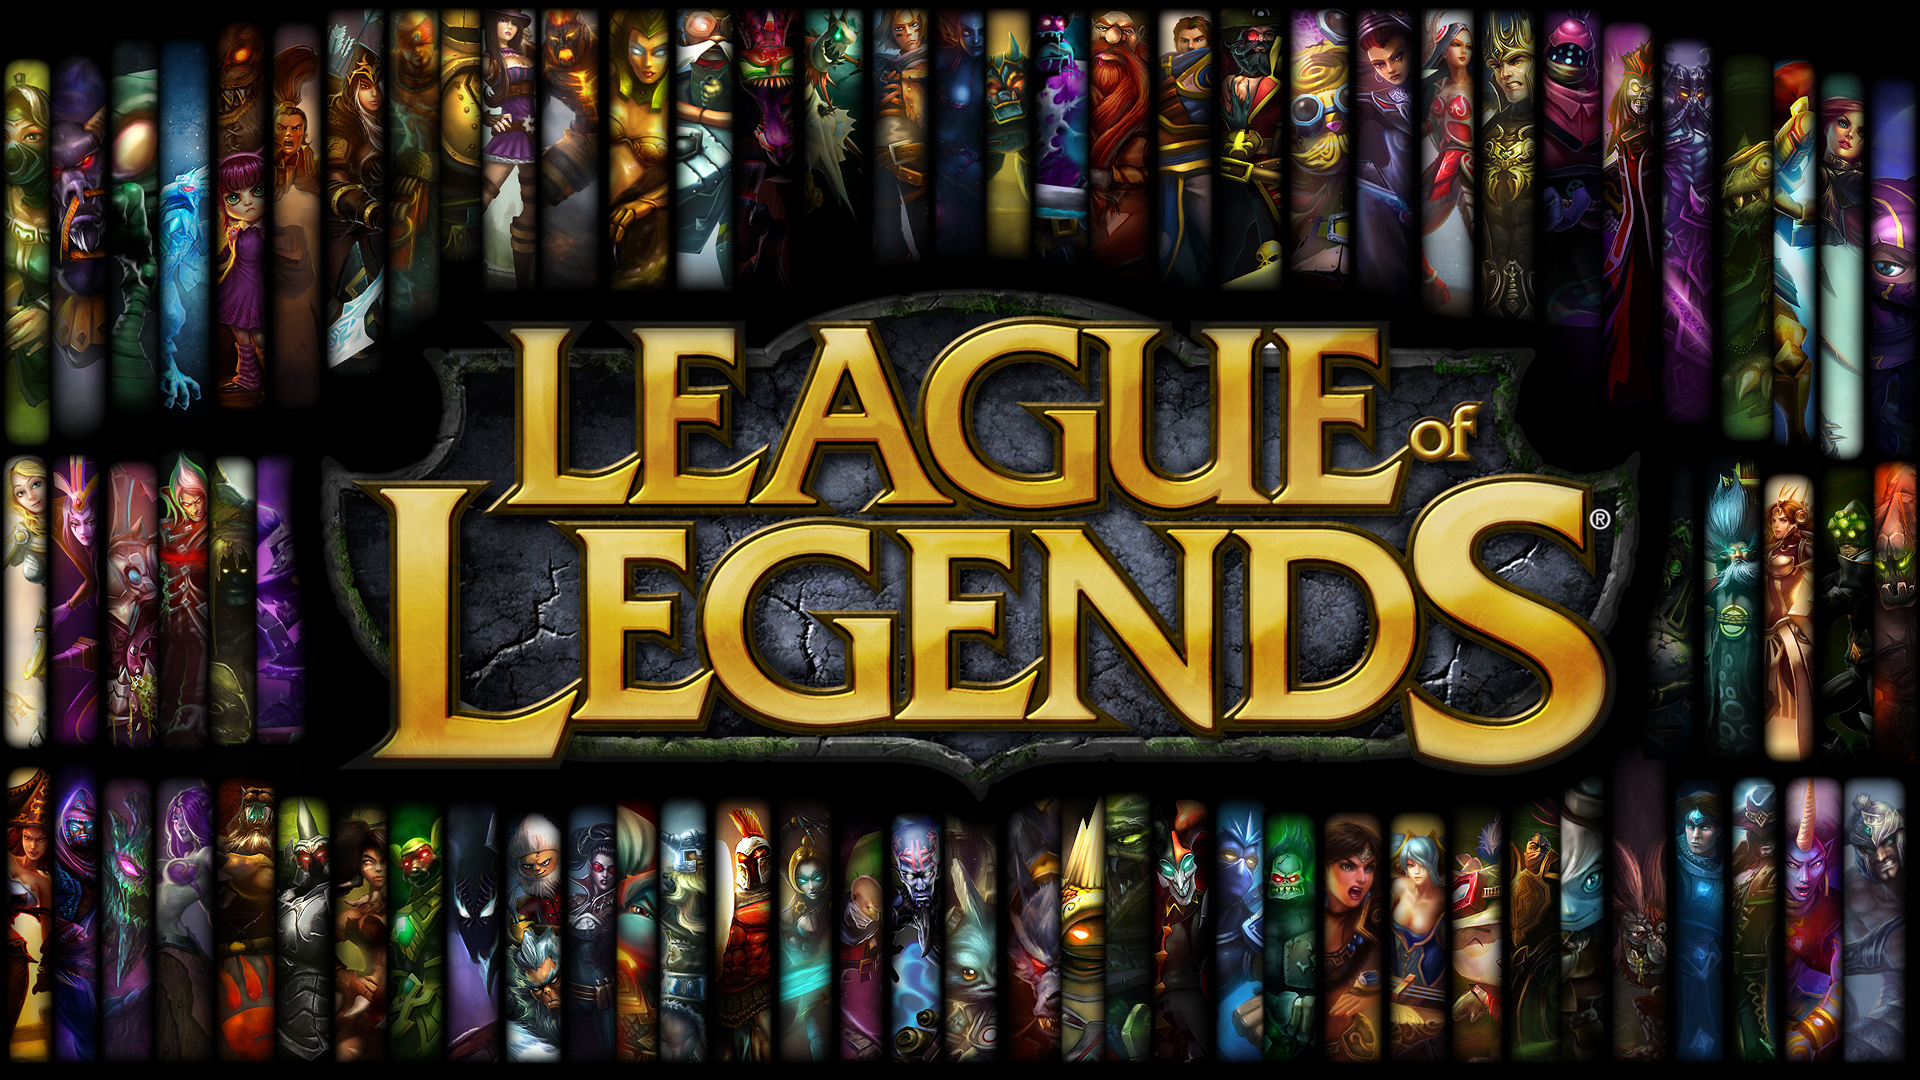 c2609c61_League-of-Legends-1920x1080.jpeg